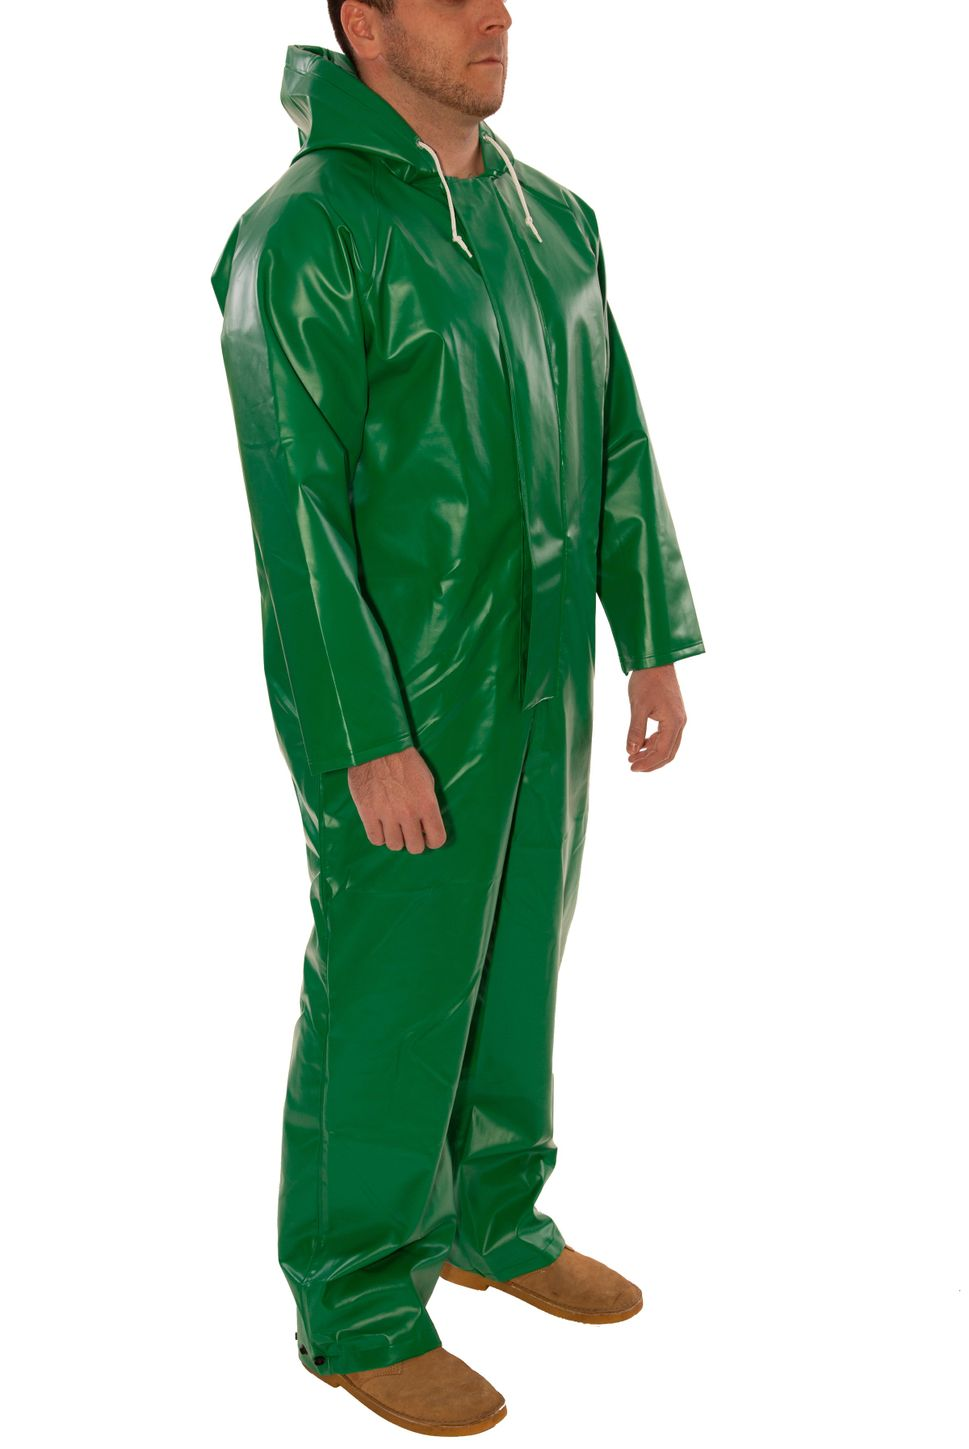 tingley-v41108-safetyflex-fire-resistant-coverall-pvc-coated-chemical-resistant-with-attached-hood-side.jpg